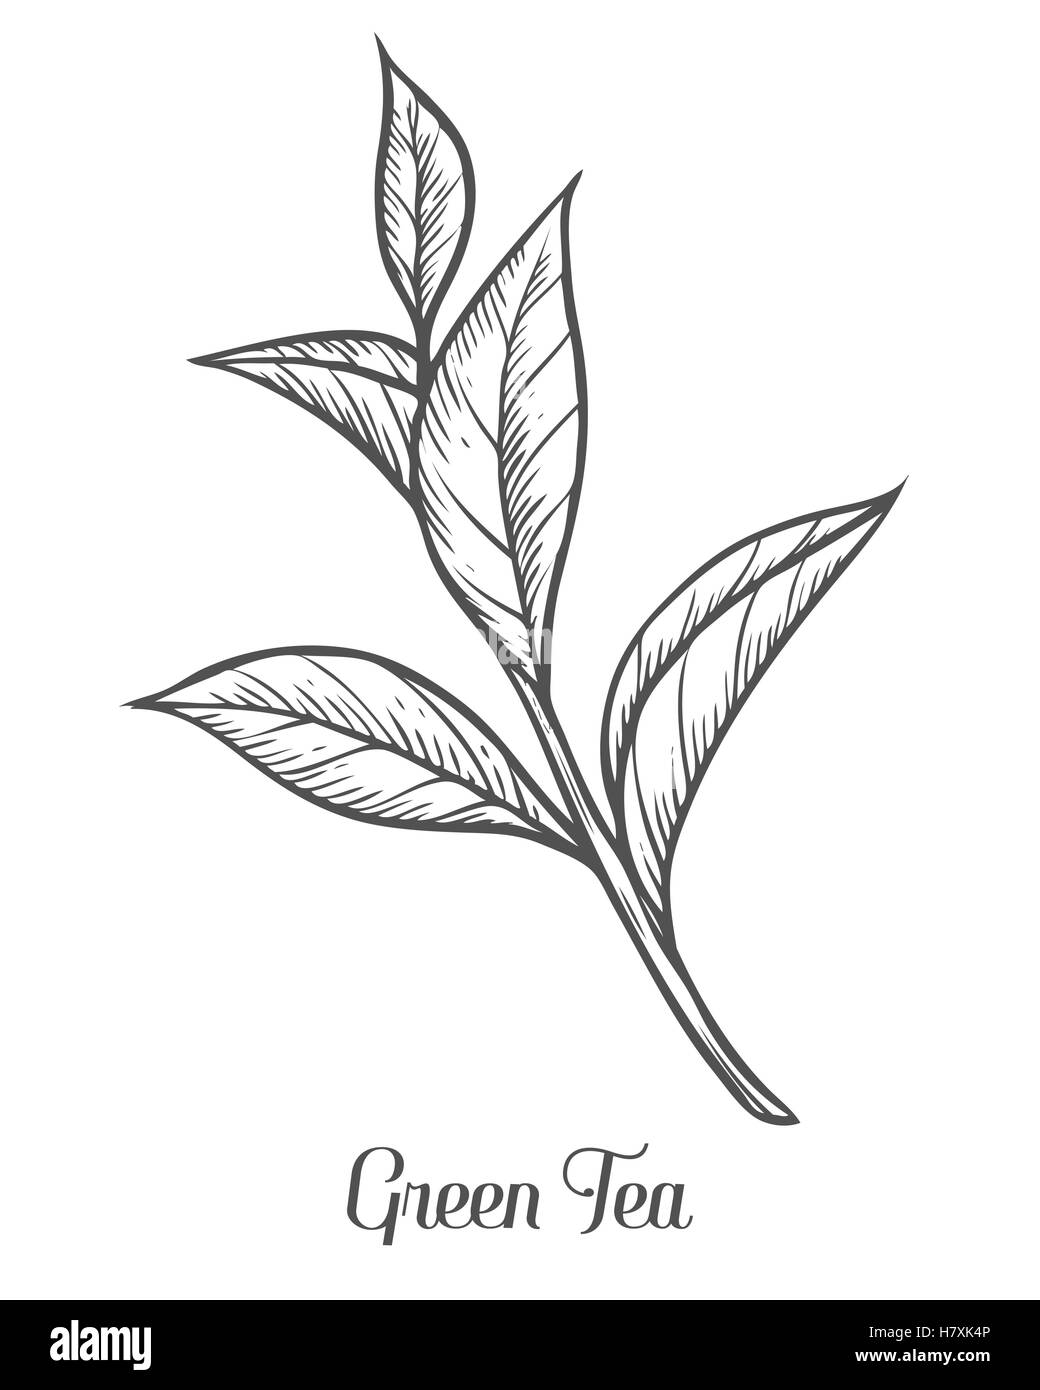 Green Flower Line Drawing : Green tea plant leaf hand drawn sketch vector